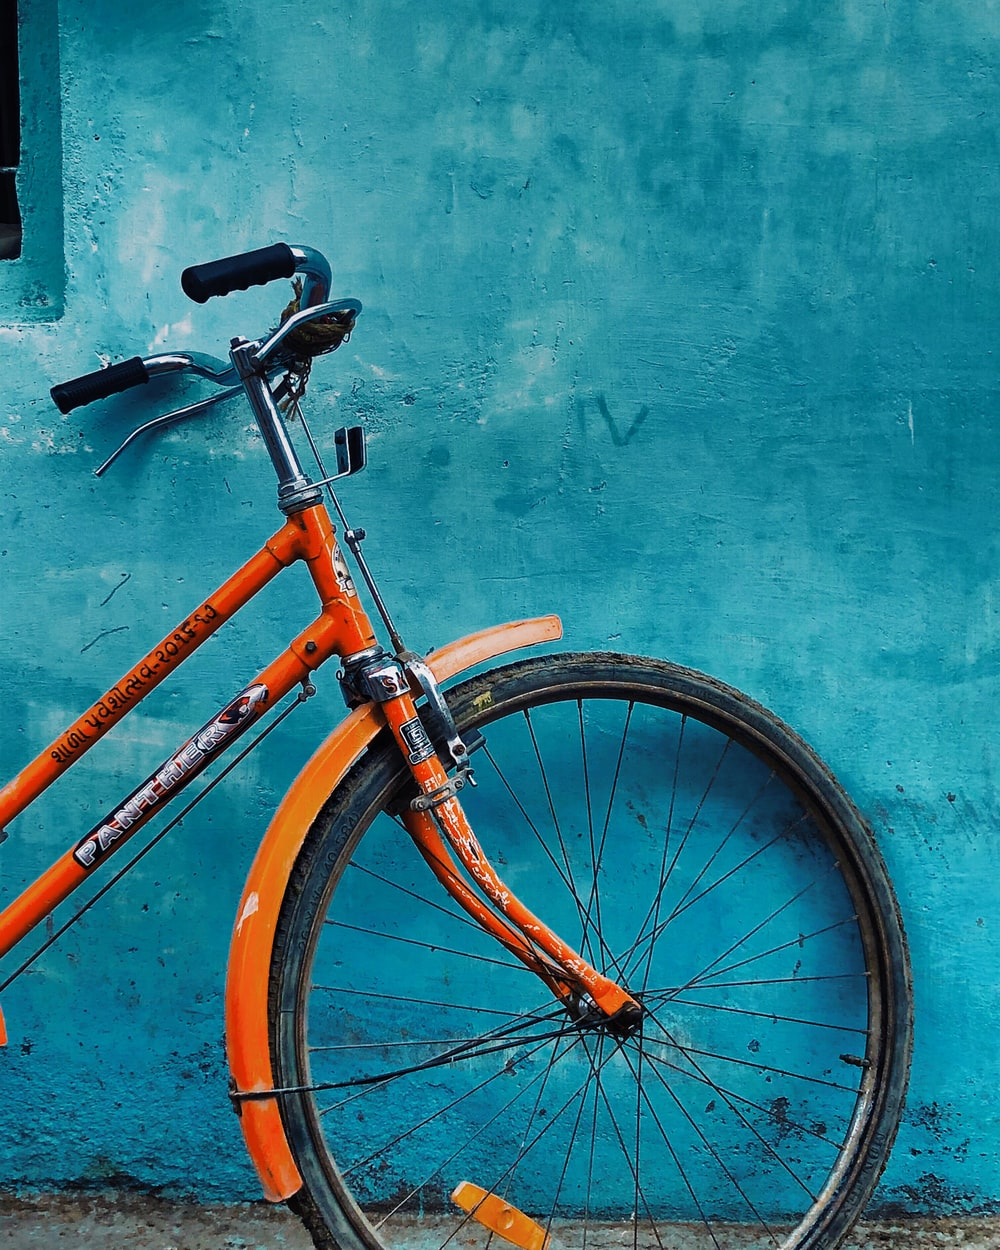 orange and black bicycle leaning on blue painted wall